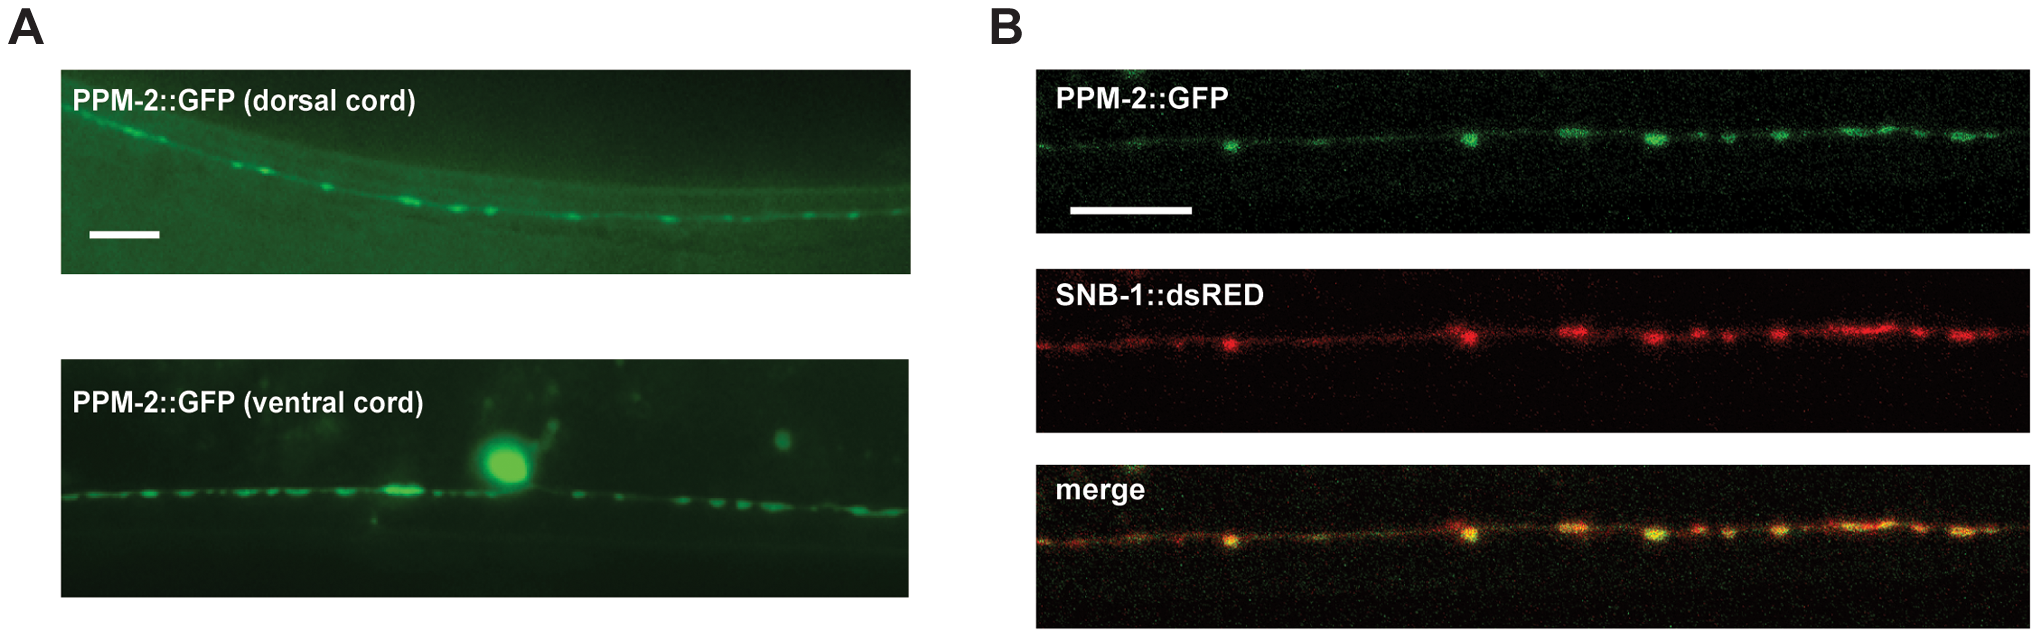 PPM-2 localizes to the presynaptic terminal.